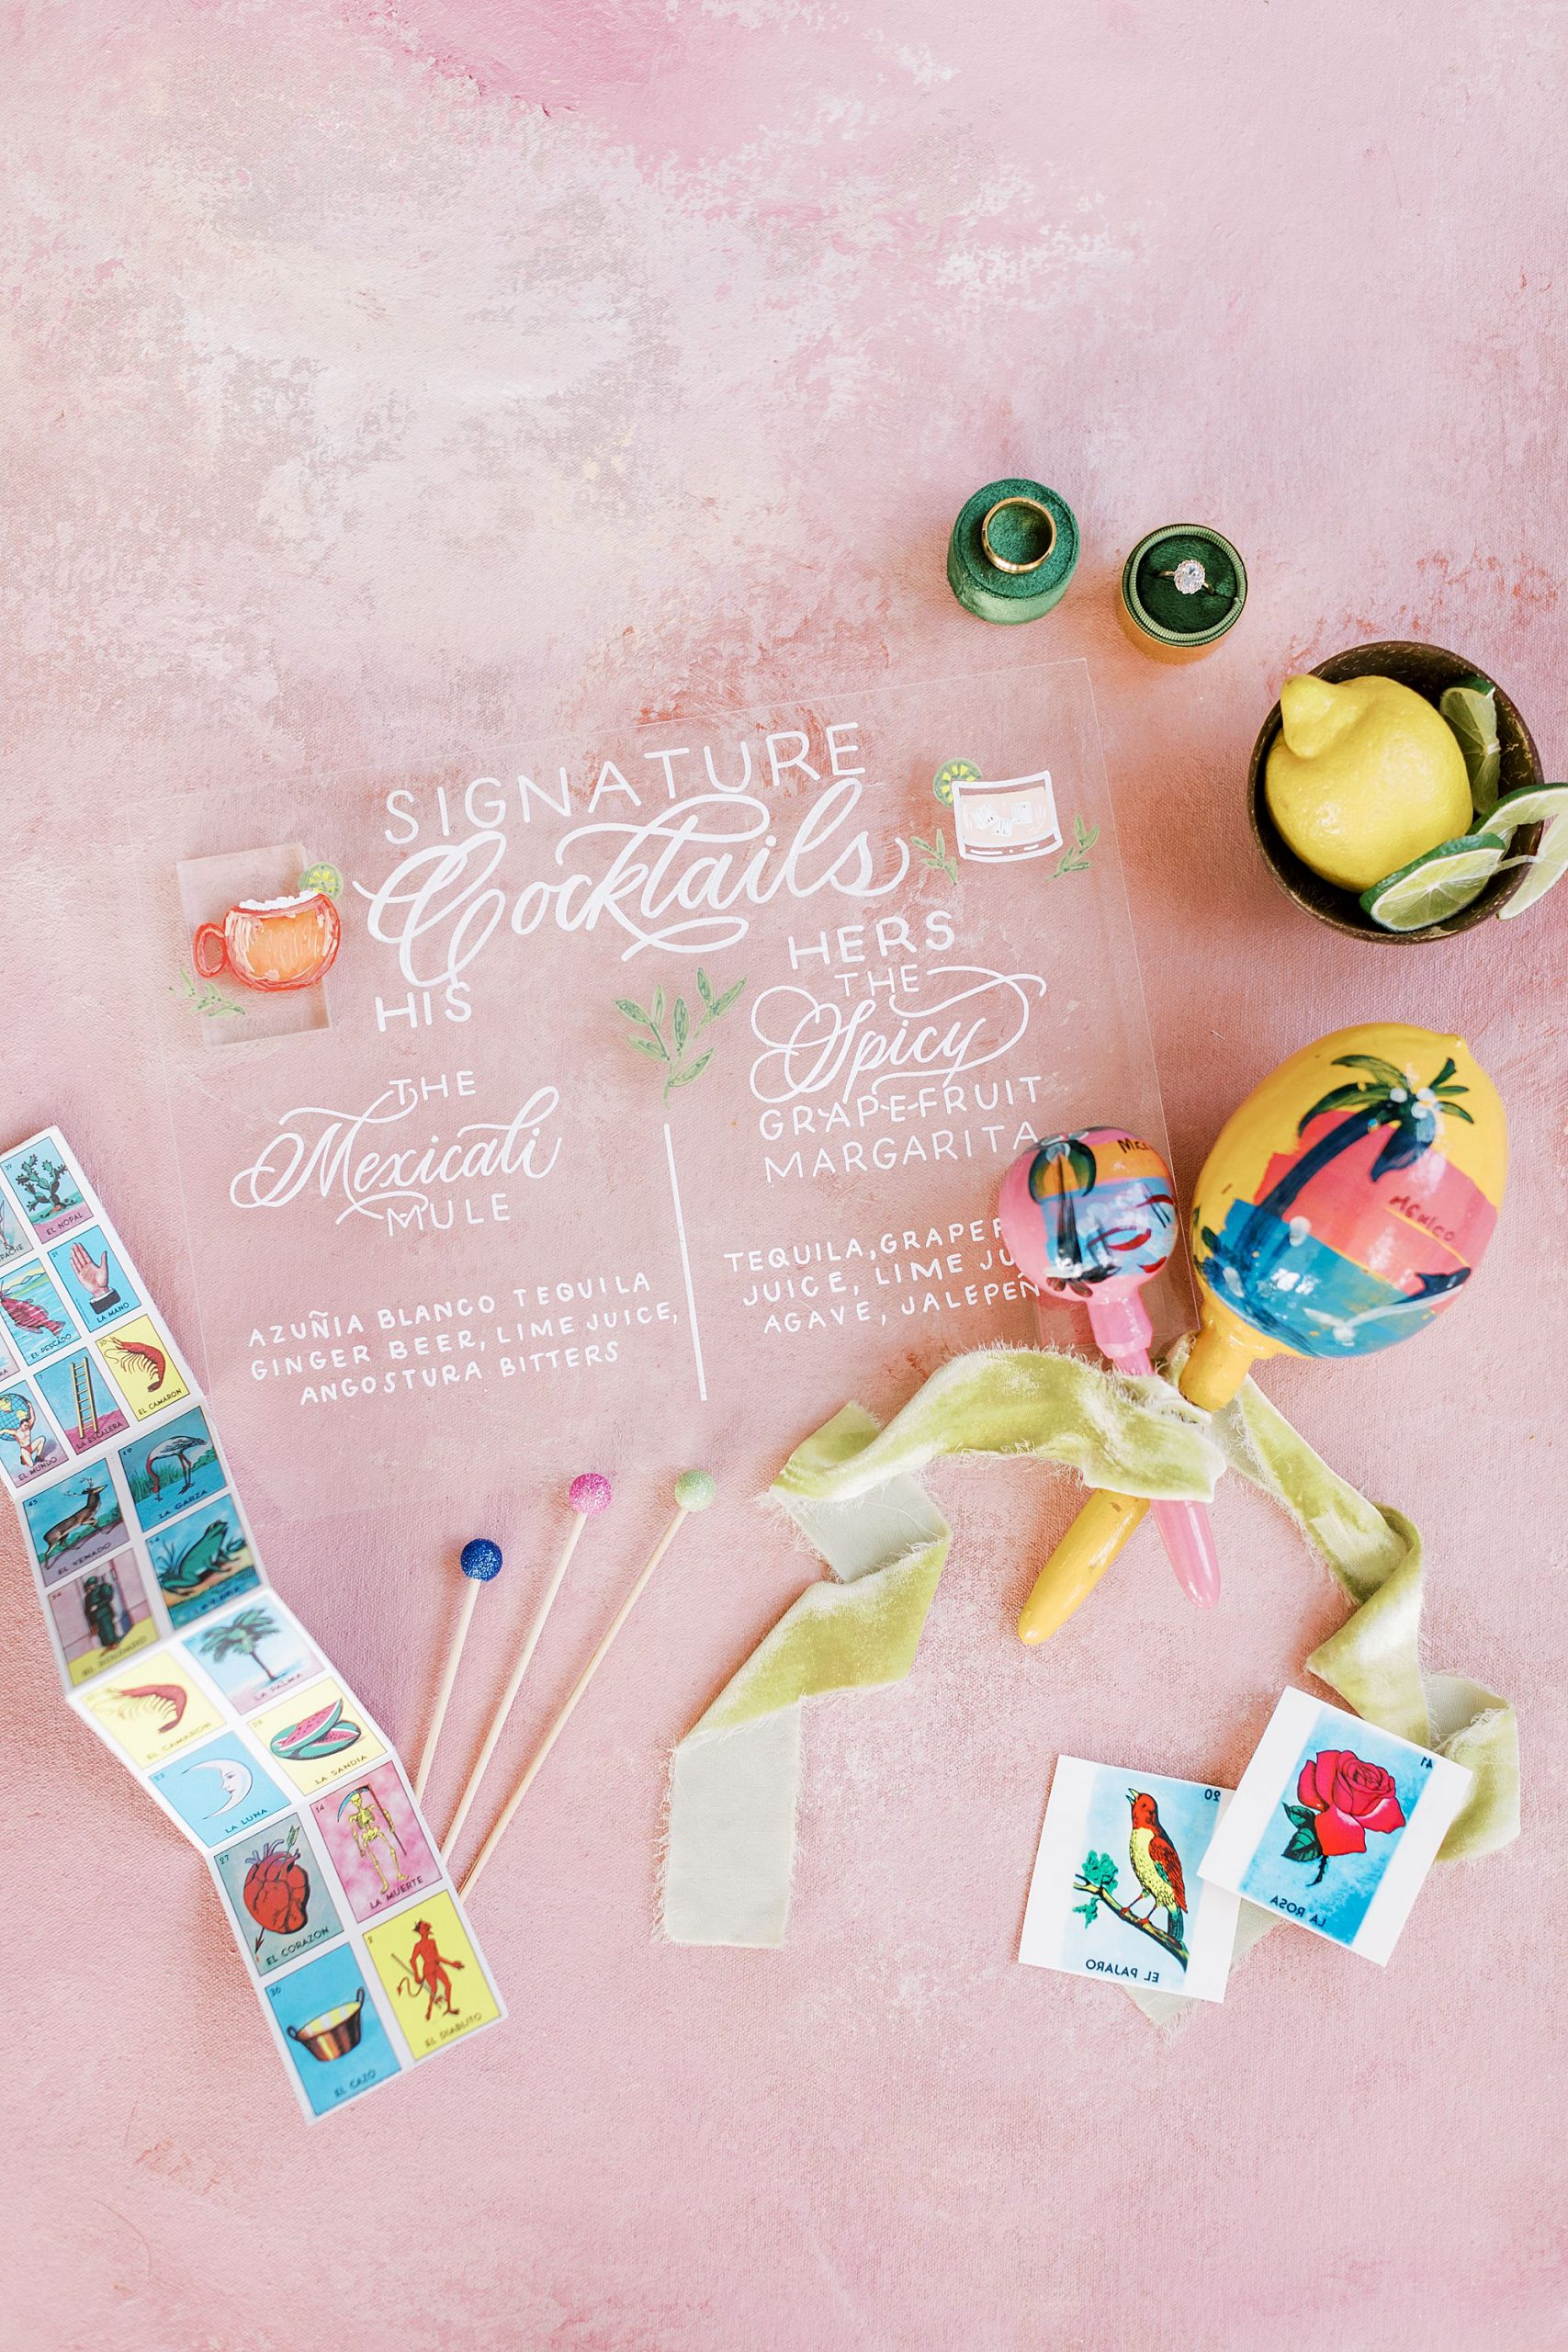 Cinco De Mayo Inspiration for Your FIesta - Party Crush Studio and Ashley Baumgartner_0050.jpg